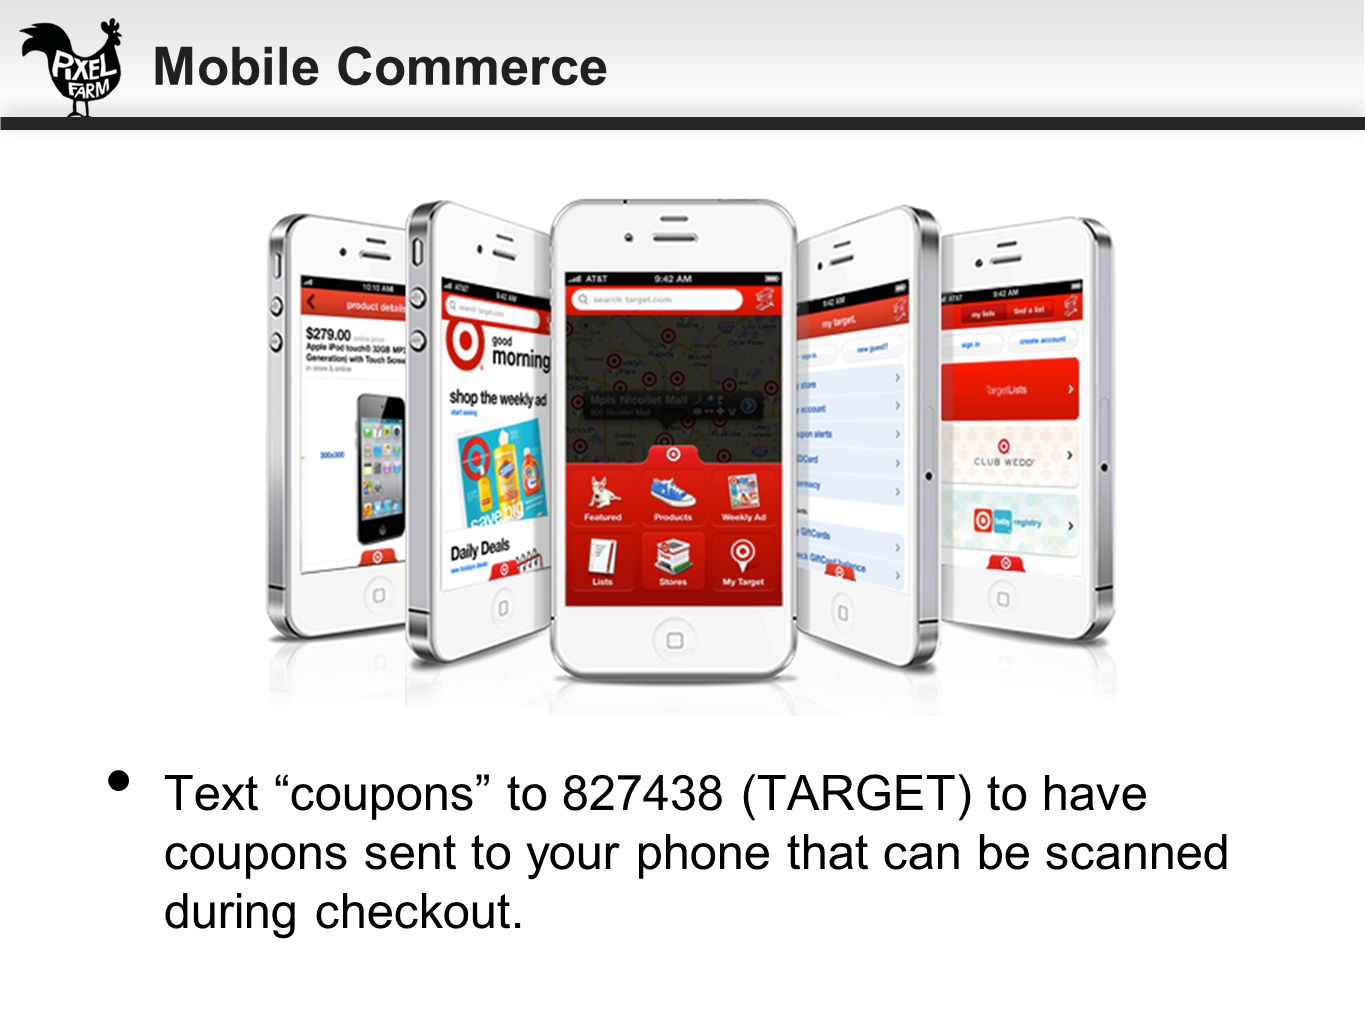 Mobile Commerce Text coupons to (TARGET) to have coupons sent to your phone that can be scanned during checkout.